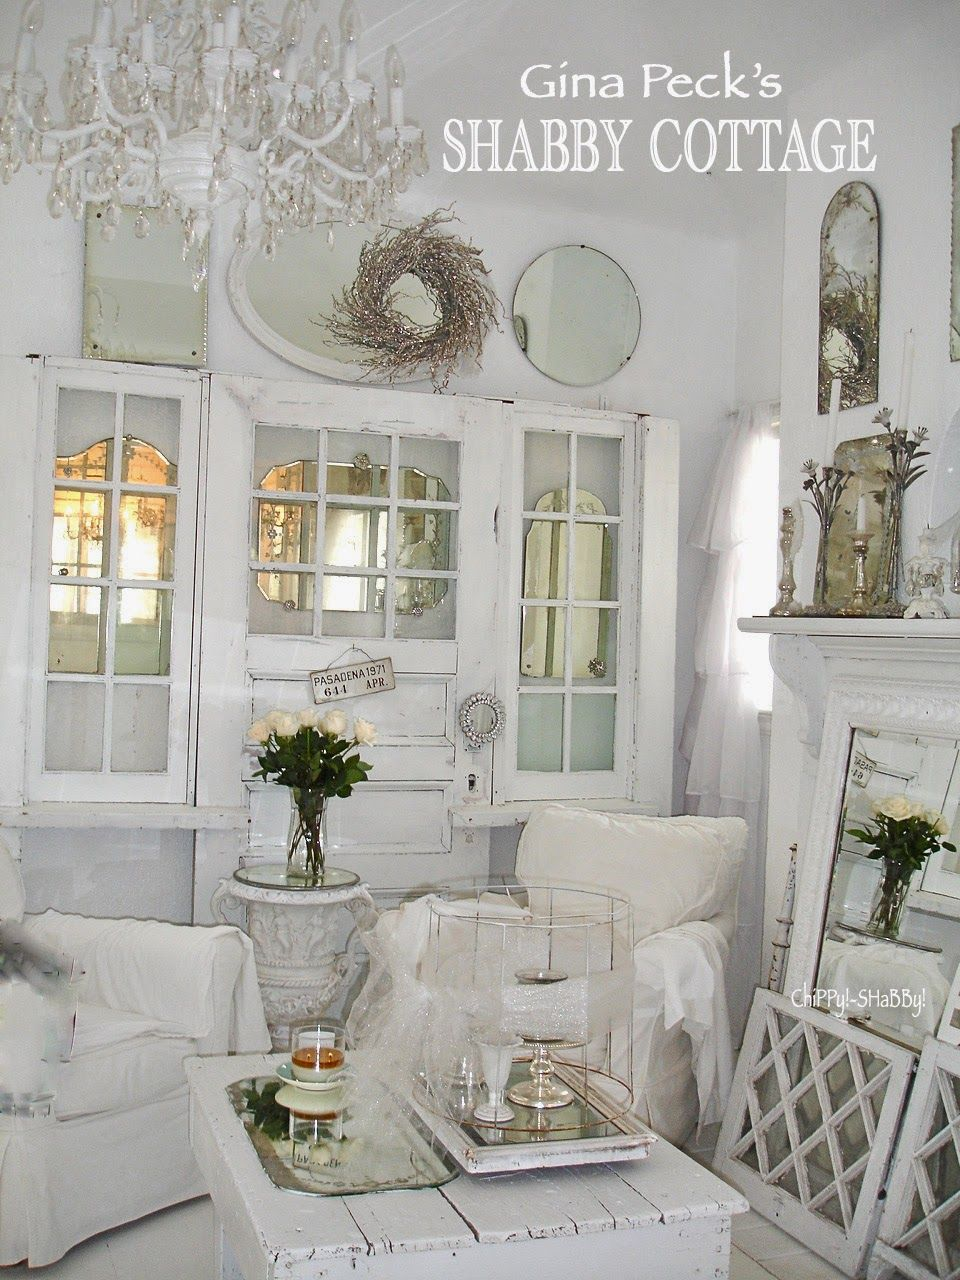 Shabby Best Ever Shabby White Out Gina Peck S Cottage Home Shabby Chic Room Shabby Chic Interiors Shabby Chic Room Decor